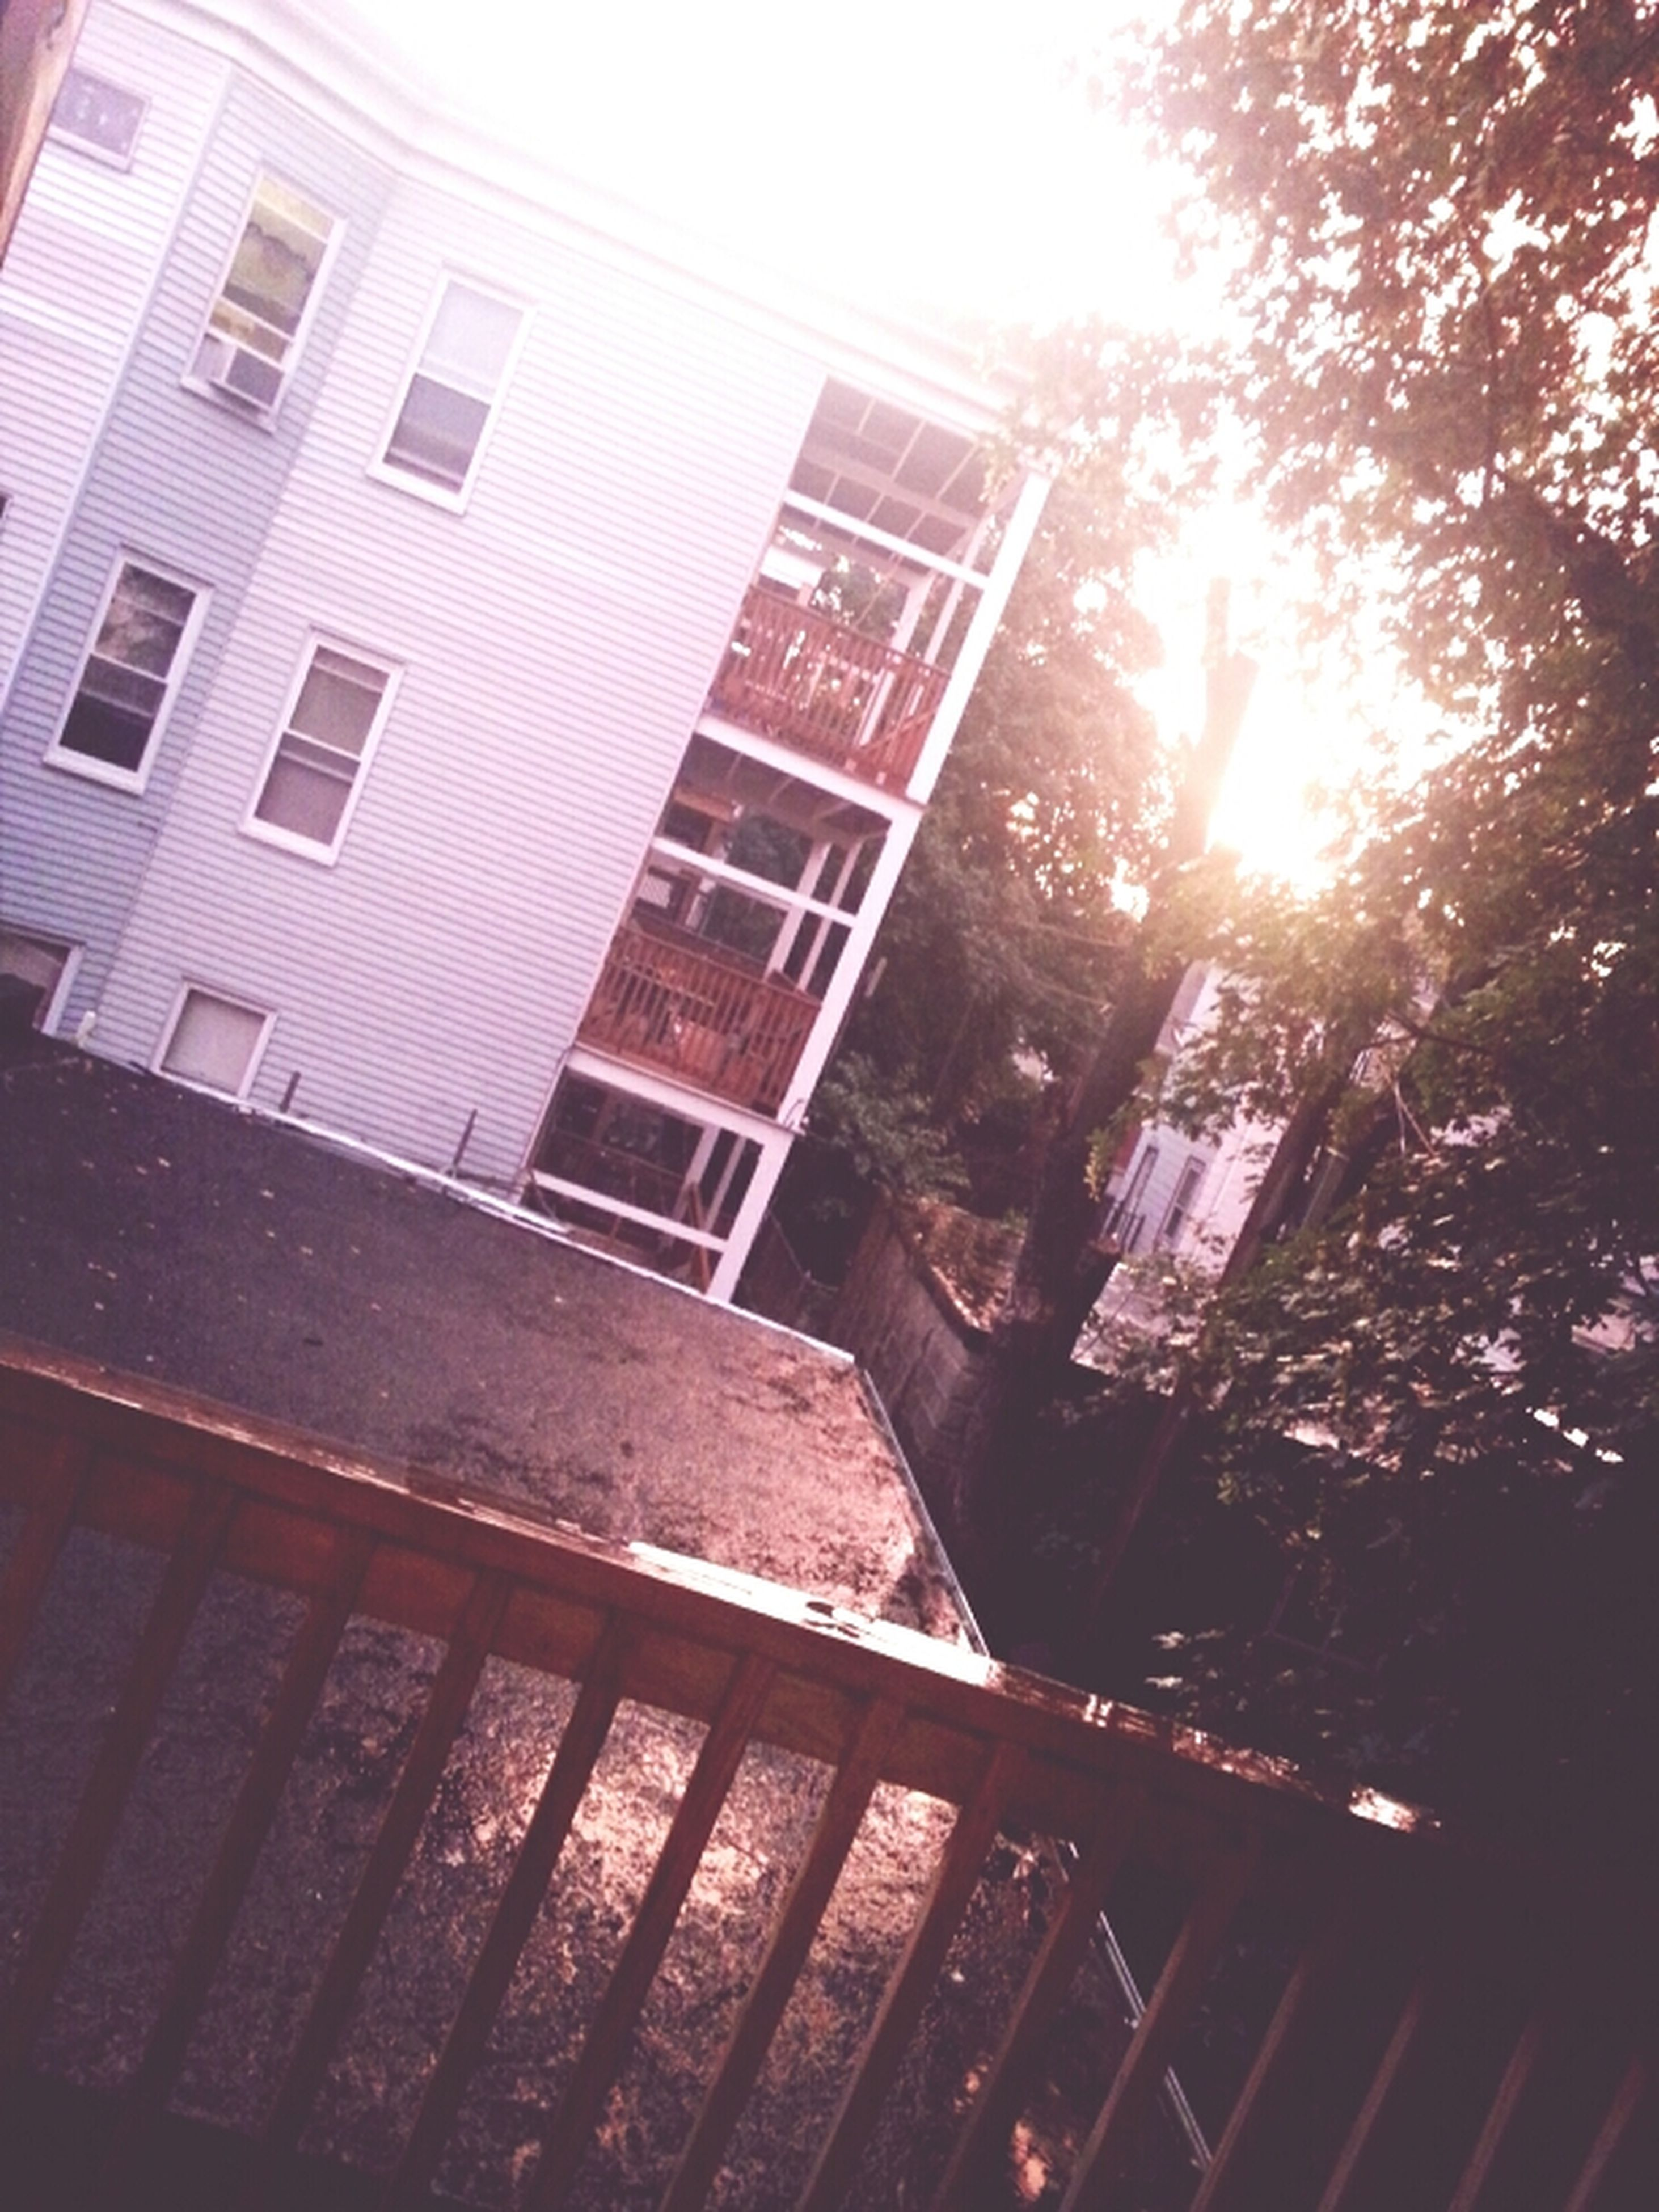 architecture, building exterior, built structure, low angle view, sunlight, sun, sunbeam, building, window, lens flare, city, residential building, sky, tree, sunny, residential structure, day, outdoors, no people, clear sky